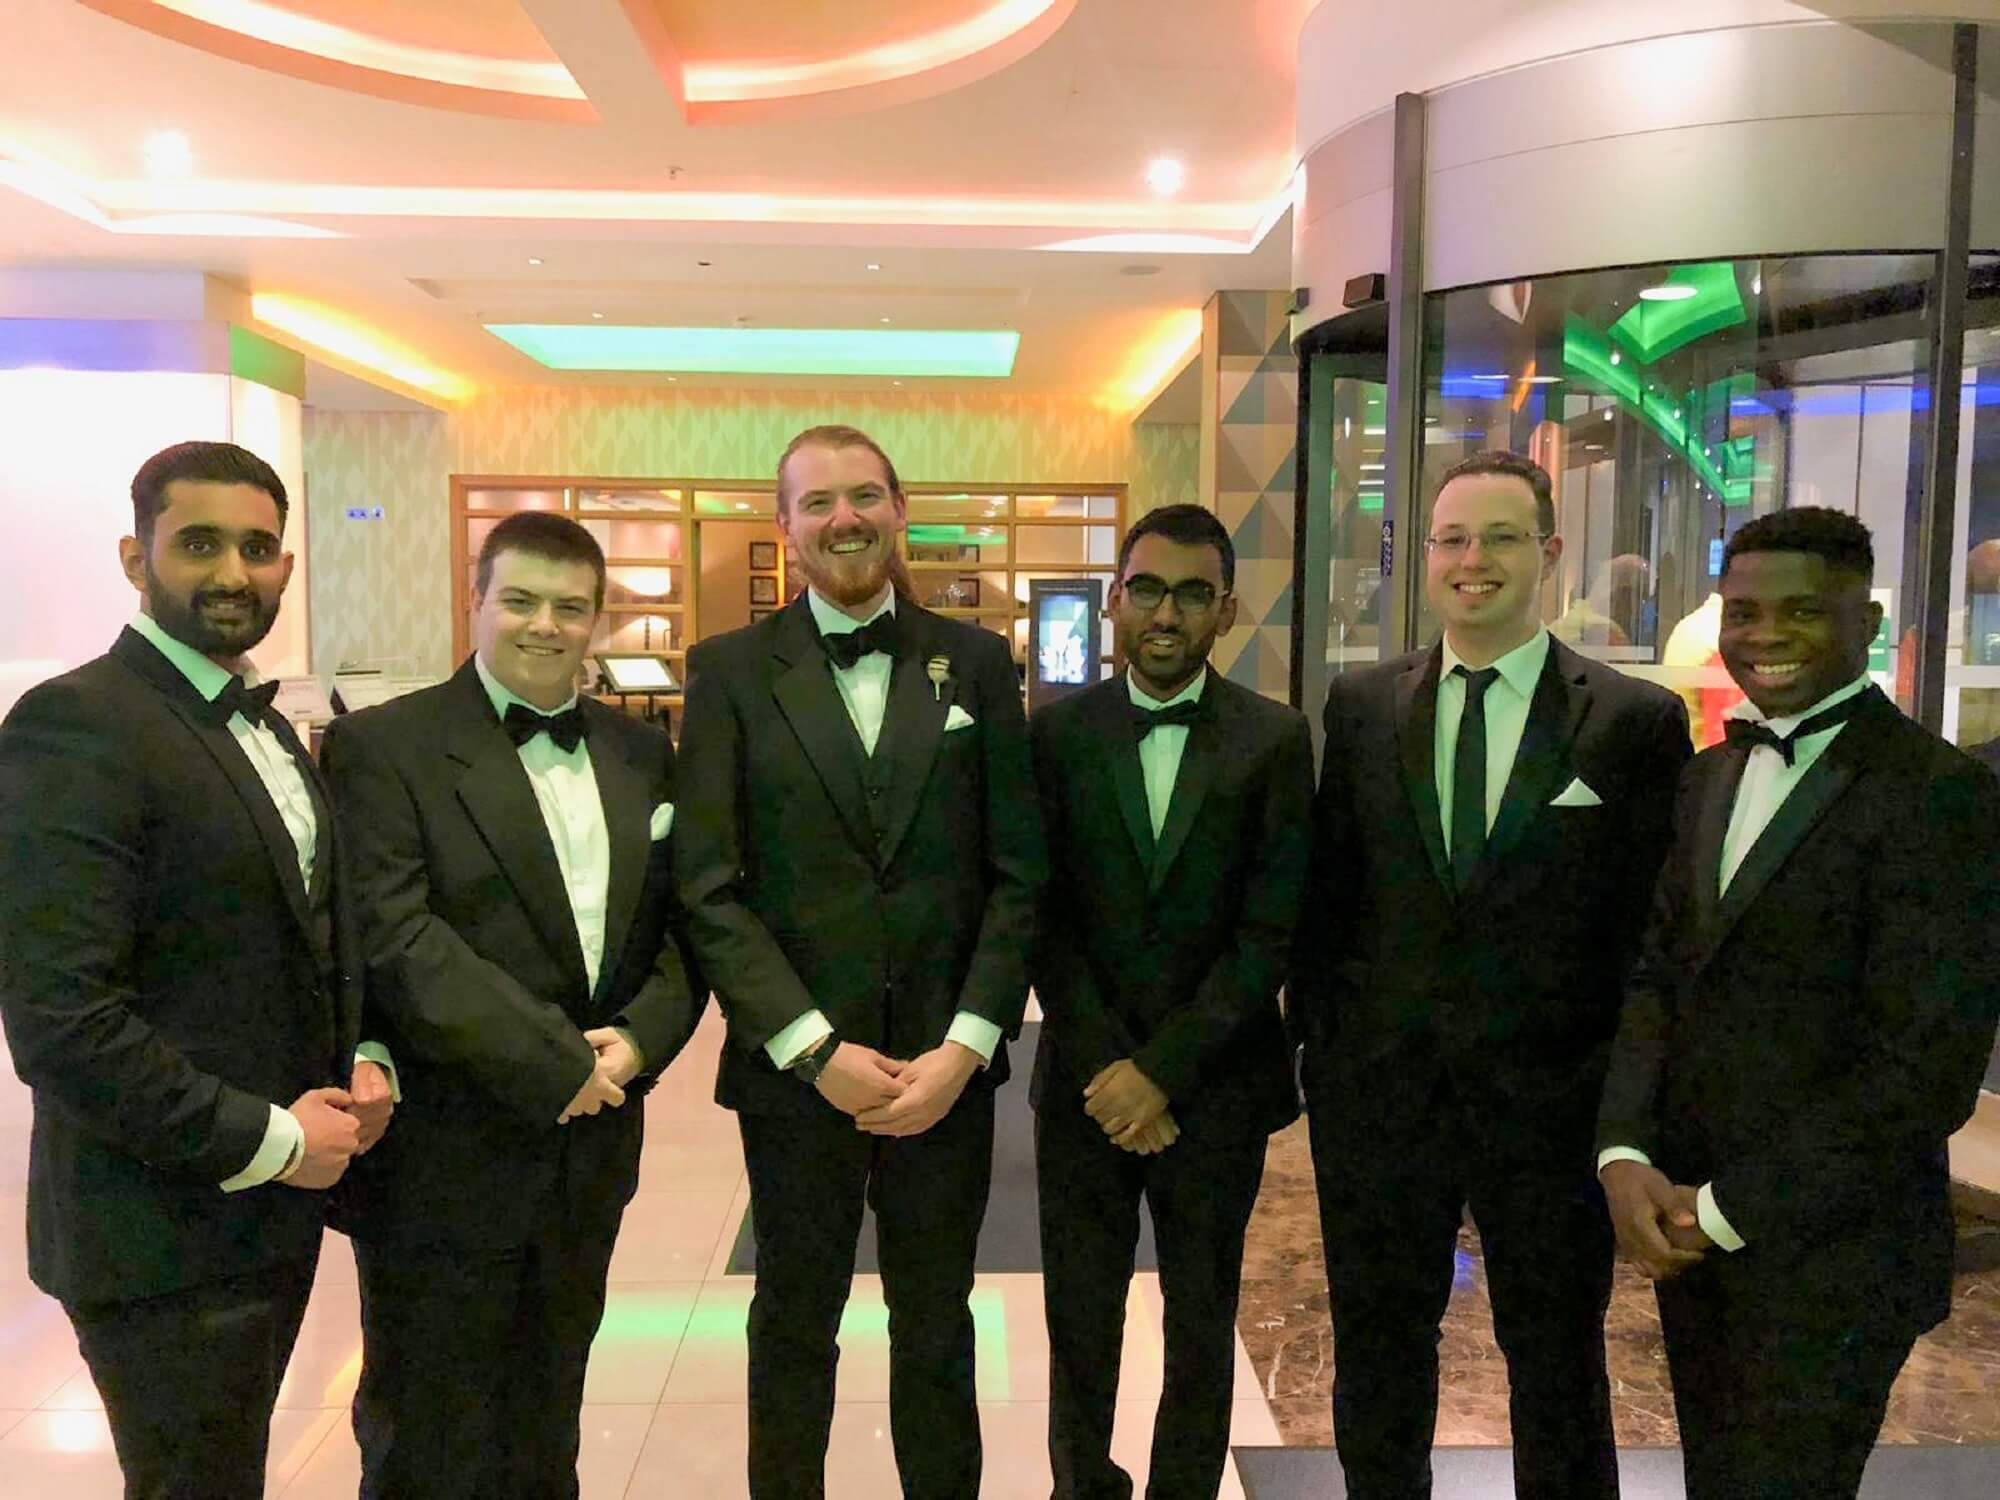 Hari Lodhia attends UK IT Awards 2018 (third from the right)